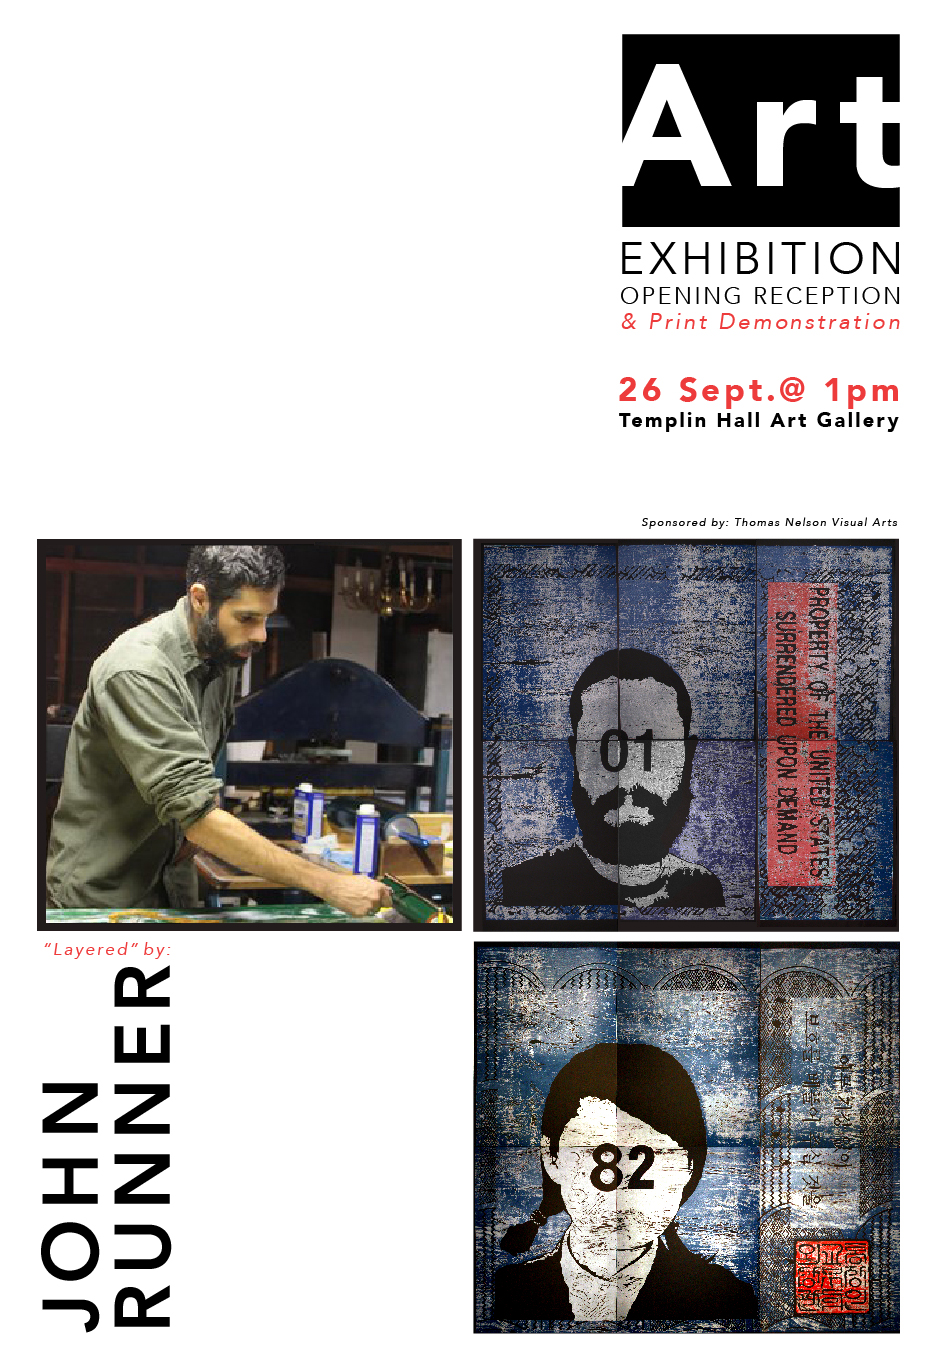 Poster of upcoming art exhibition.